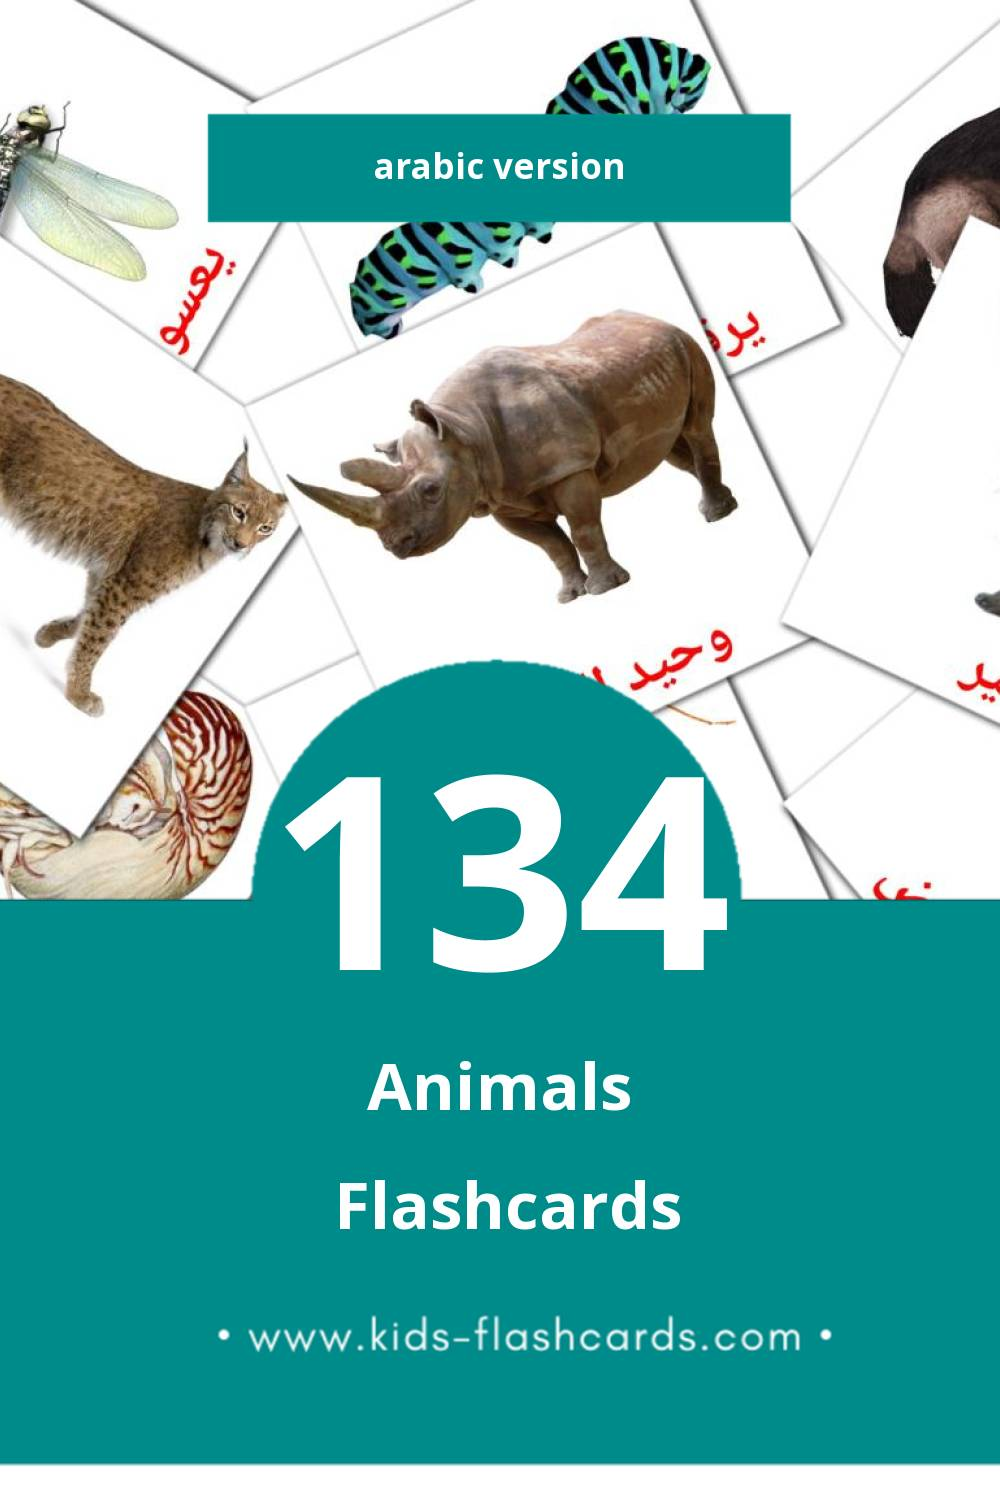 Visual حيوانات برية Flashcards for Toddlers (134 cards in Arabic)